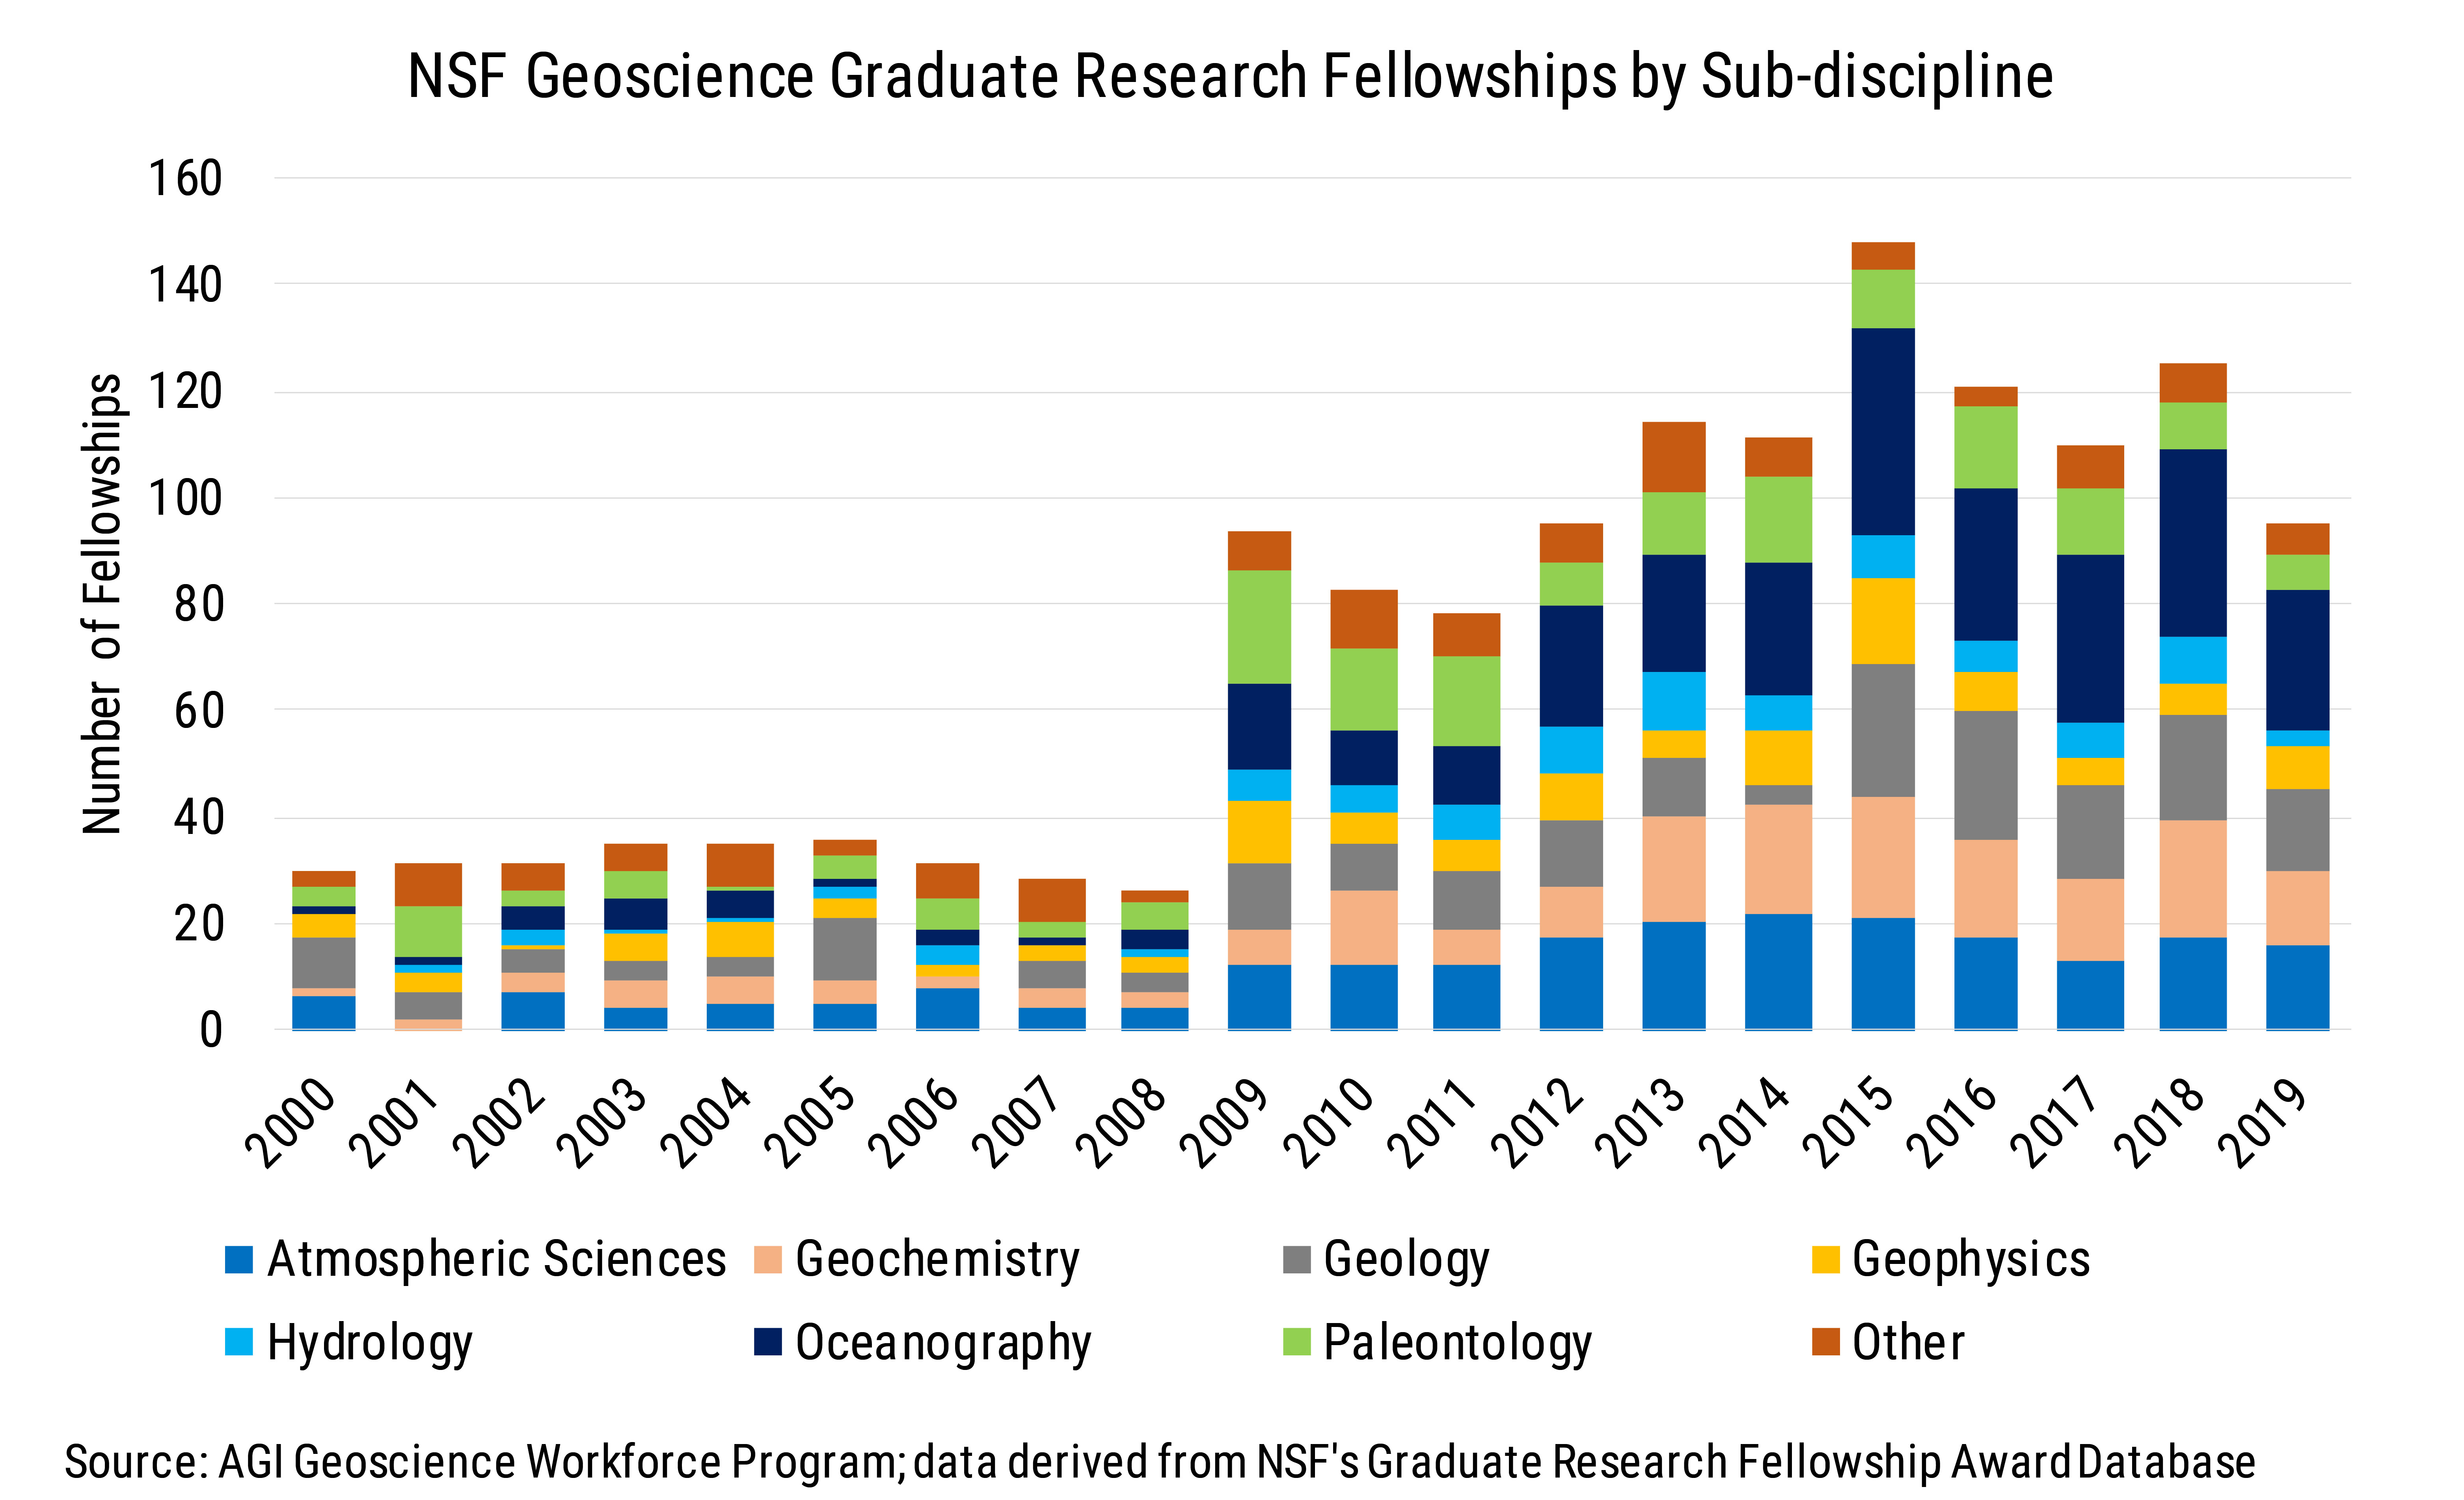 Data Brief 2009-009 chart02: Number of NSF Geoscience Graduate Research Fellowships by Sub-discipline